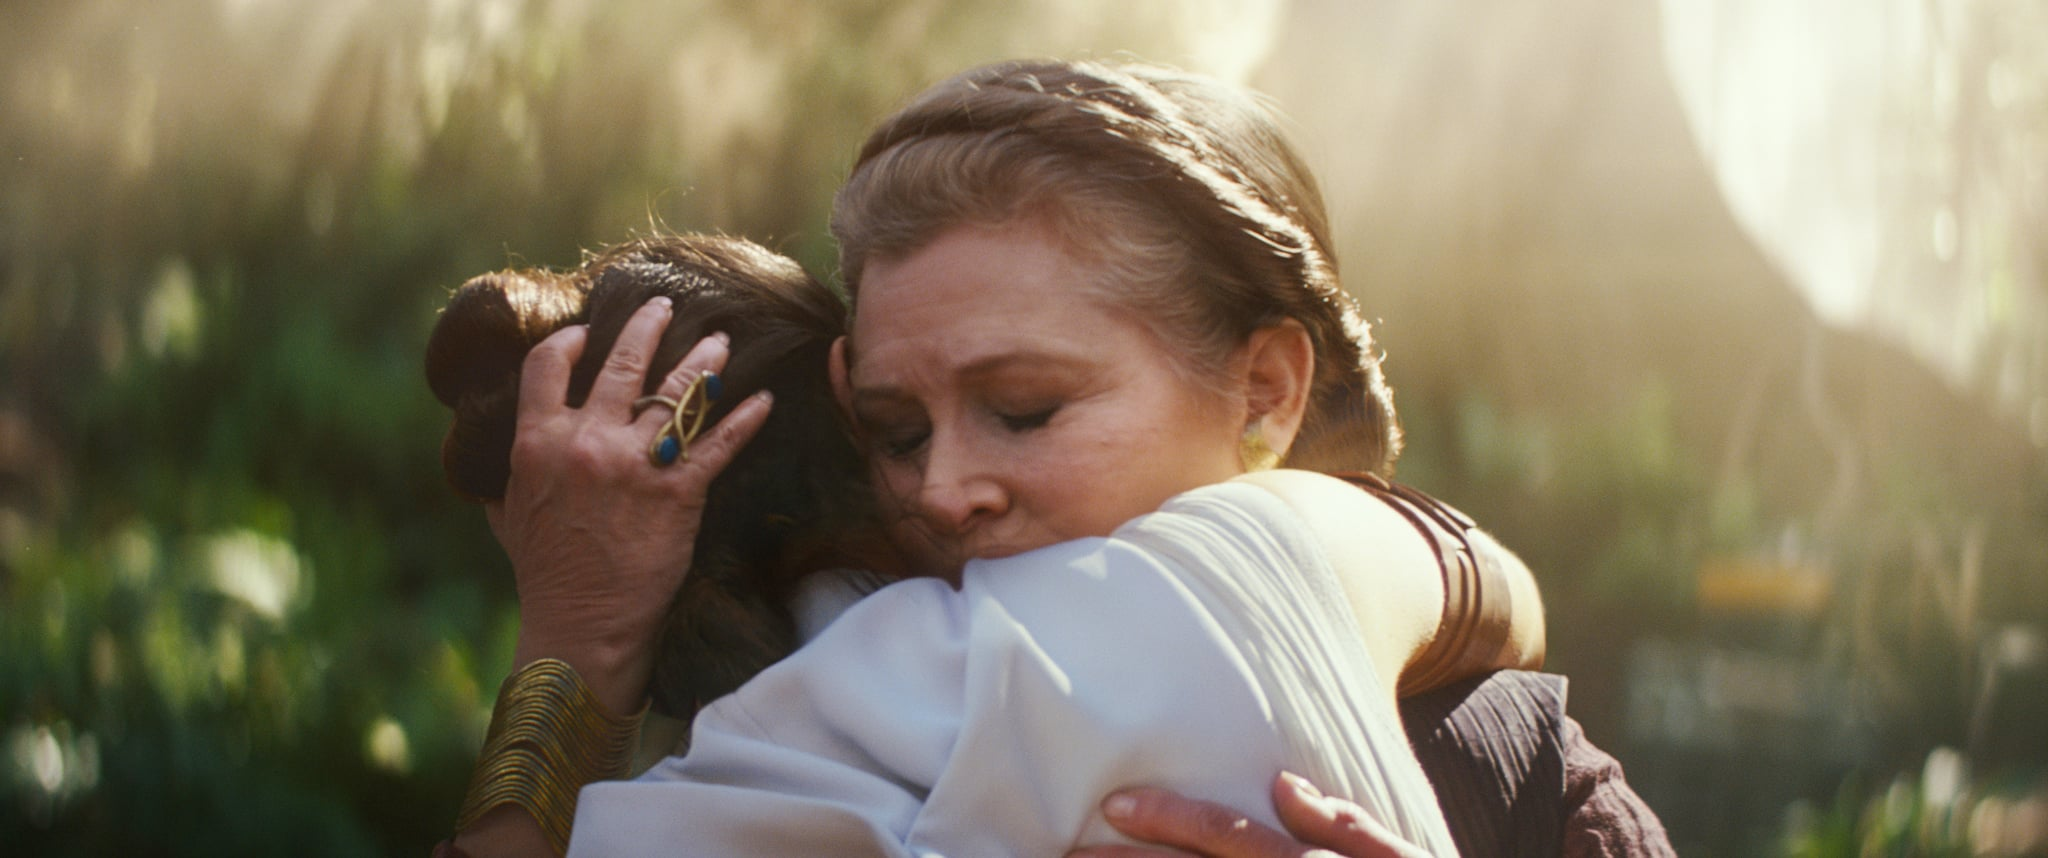 STAR WARS: THE RISE OF SKYWALKER, (aka STAR WARS: EPISODE IX), from left: Daisy Ridley as Rey, Carrie Fisher as General Leia Organa, 2019.  Walt Disney Studios Motion Pictures /  Lucasfilm / courtesy Everett Collection